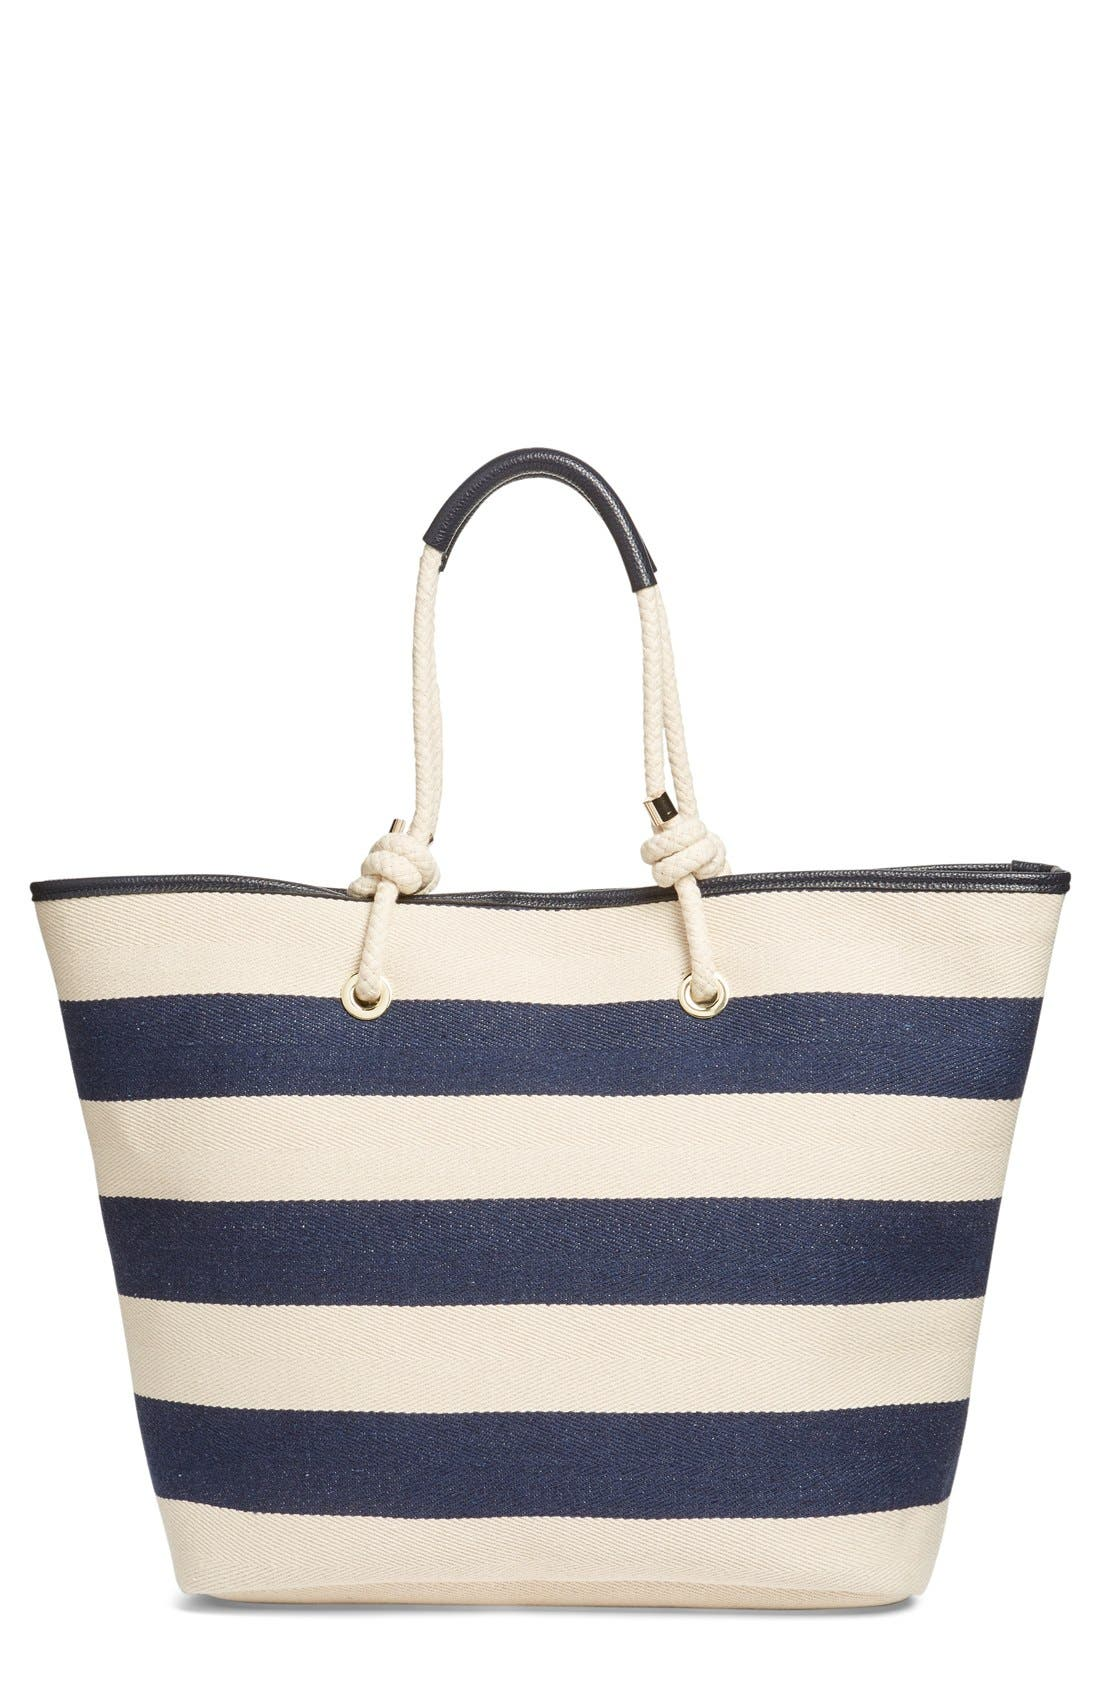 Phase 3 Rope Handle Canvas Tote